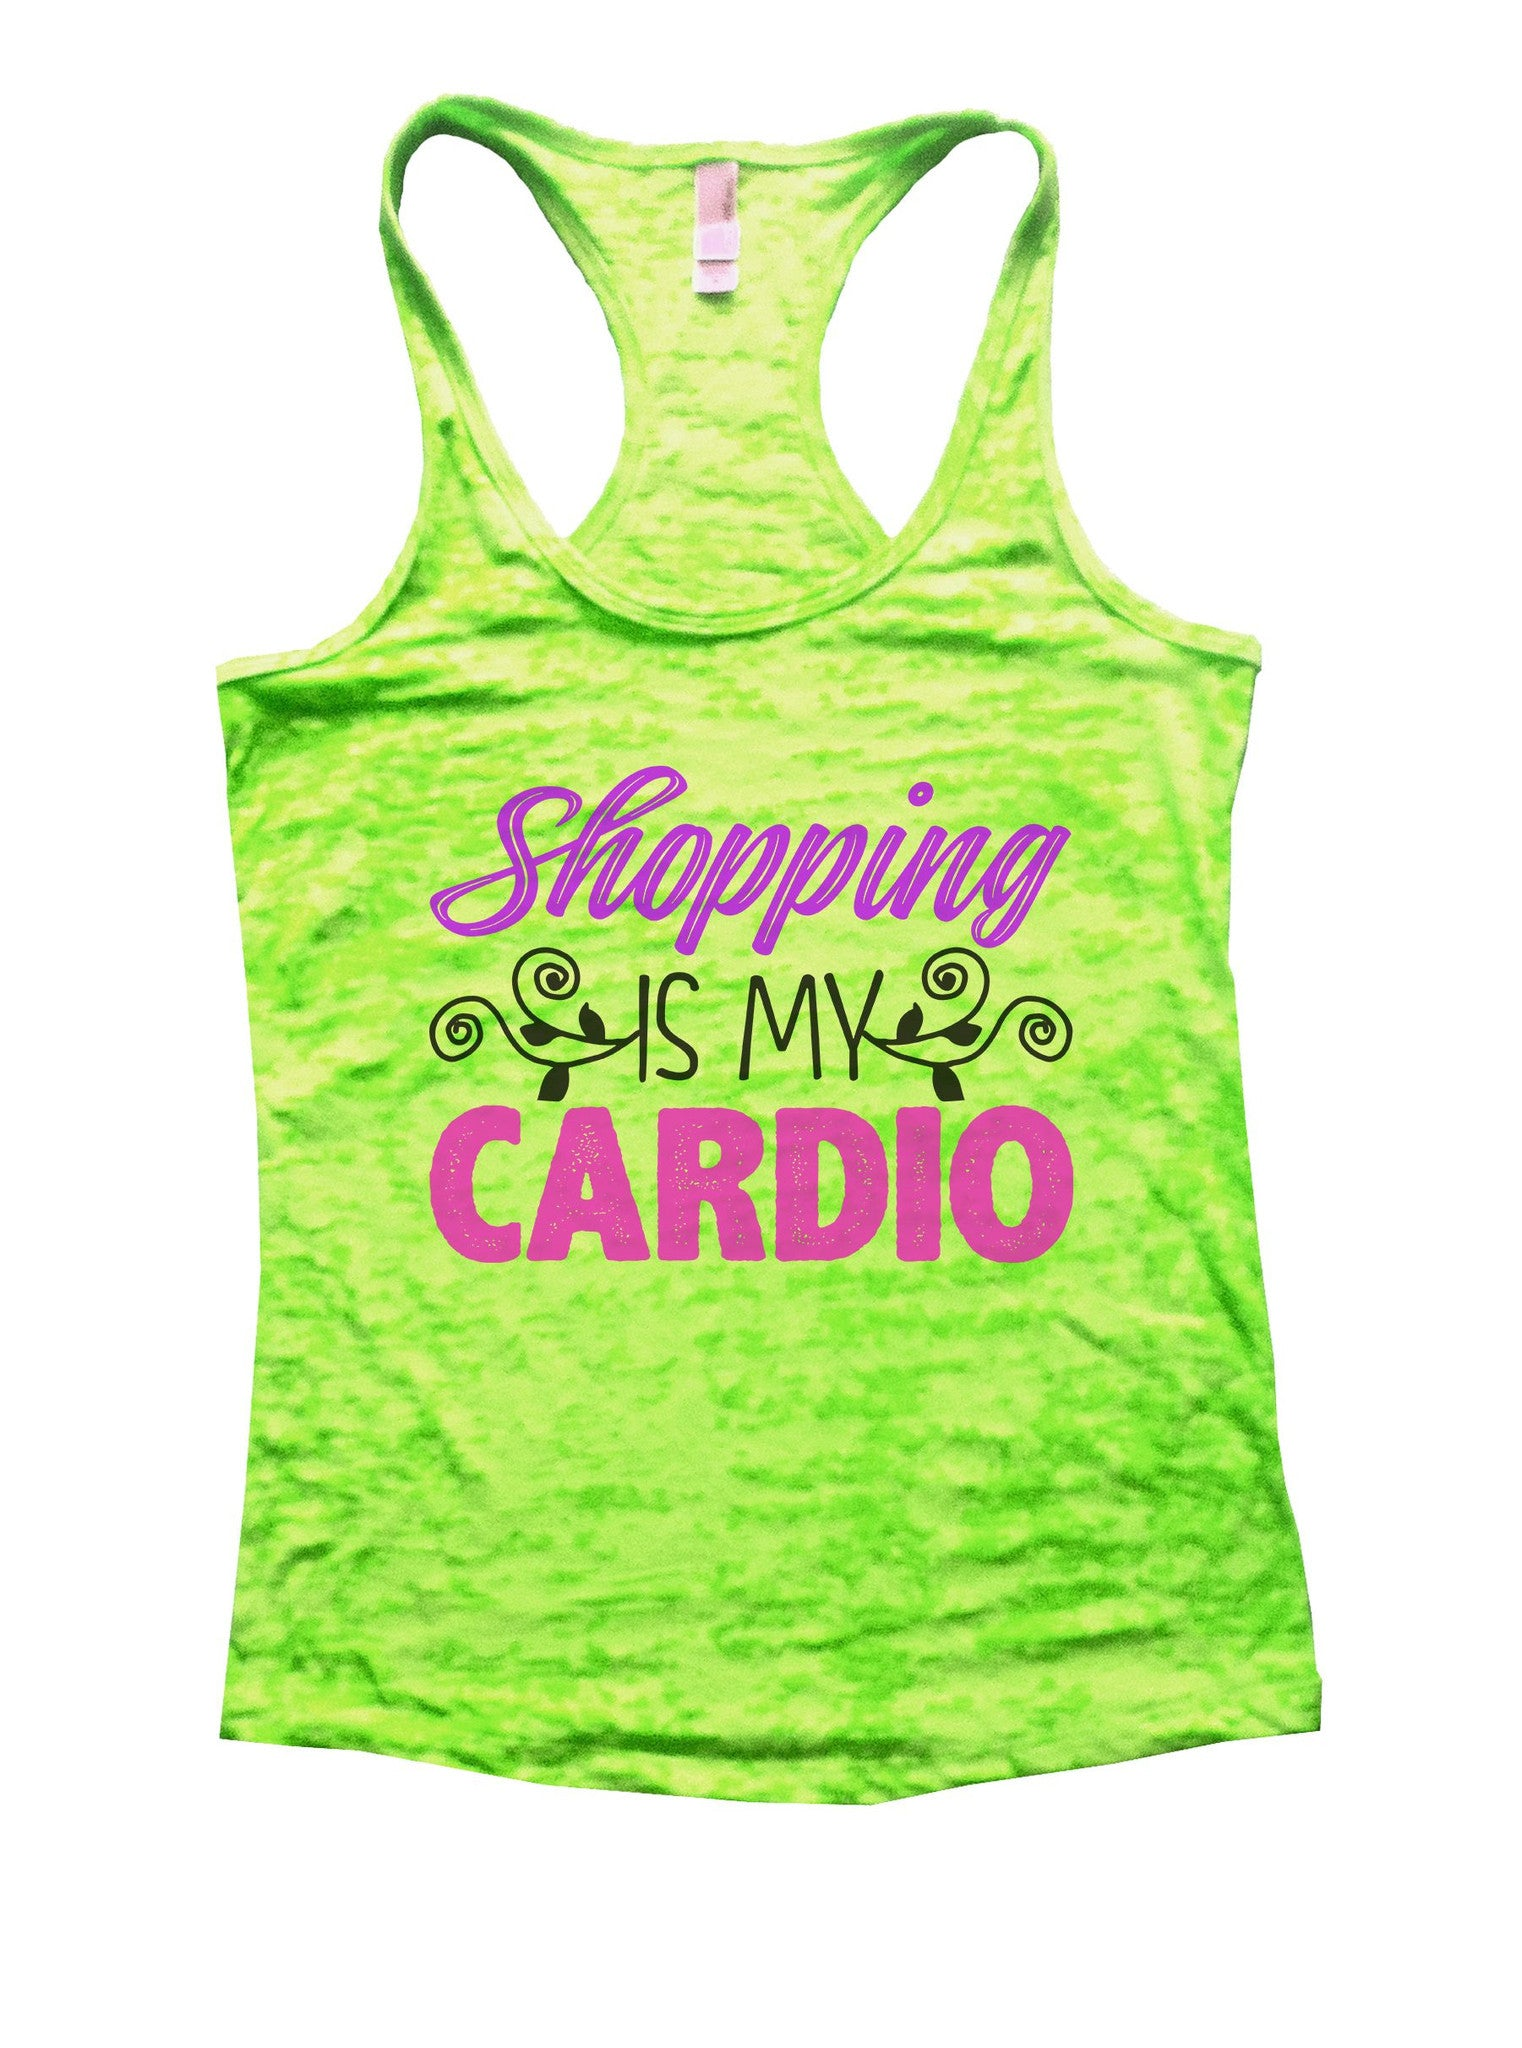 Shopping Is My Cardio Burnout Tank Top By BurnoutTankTops.com - 1025 - Funny Shirts Tank Tops Burnouts and Triblends  - 1